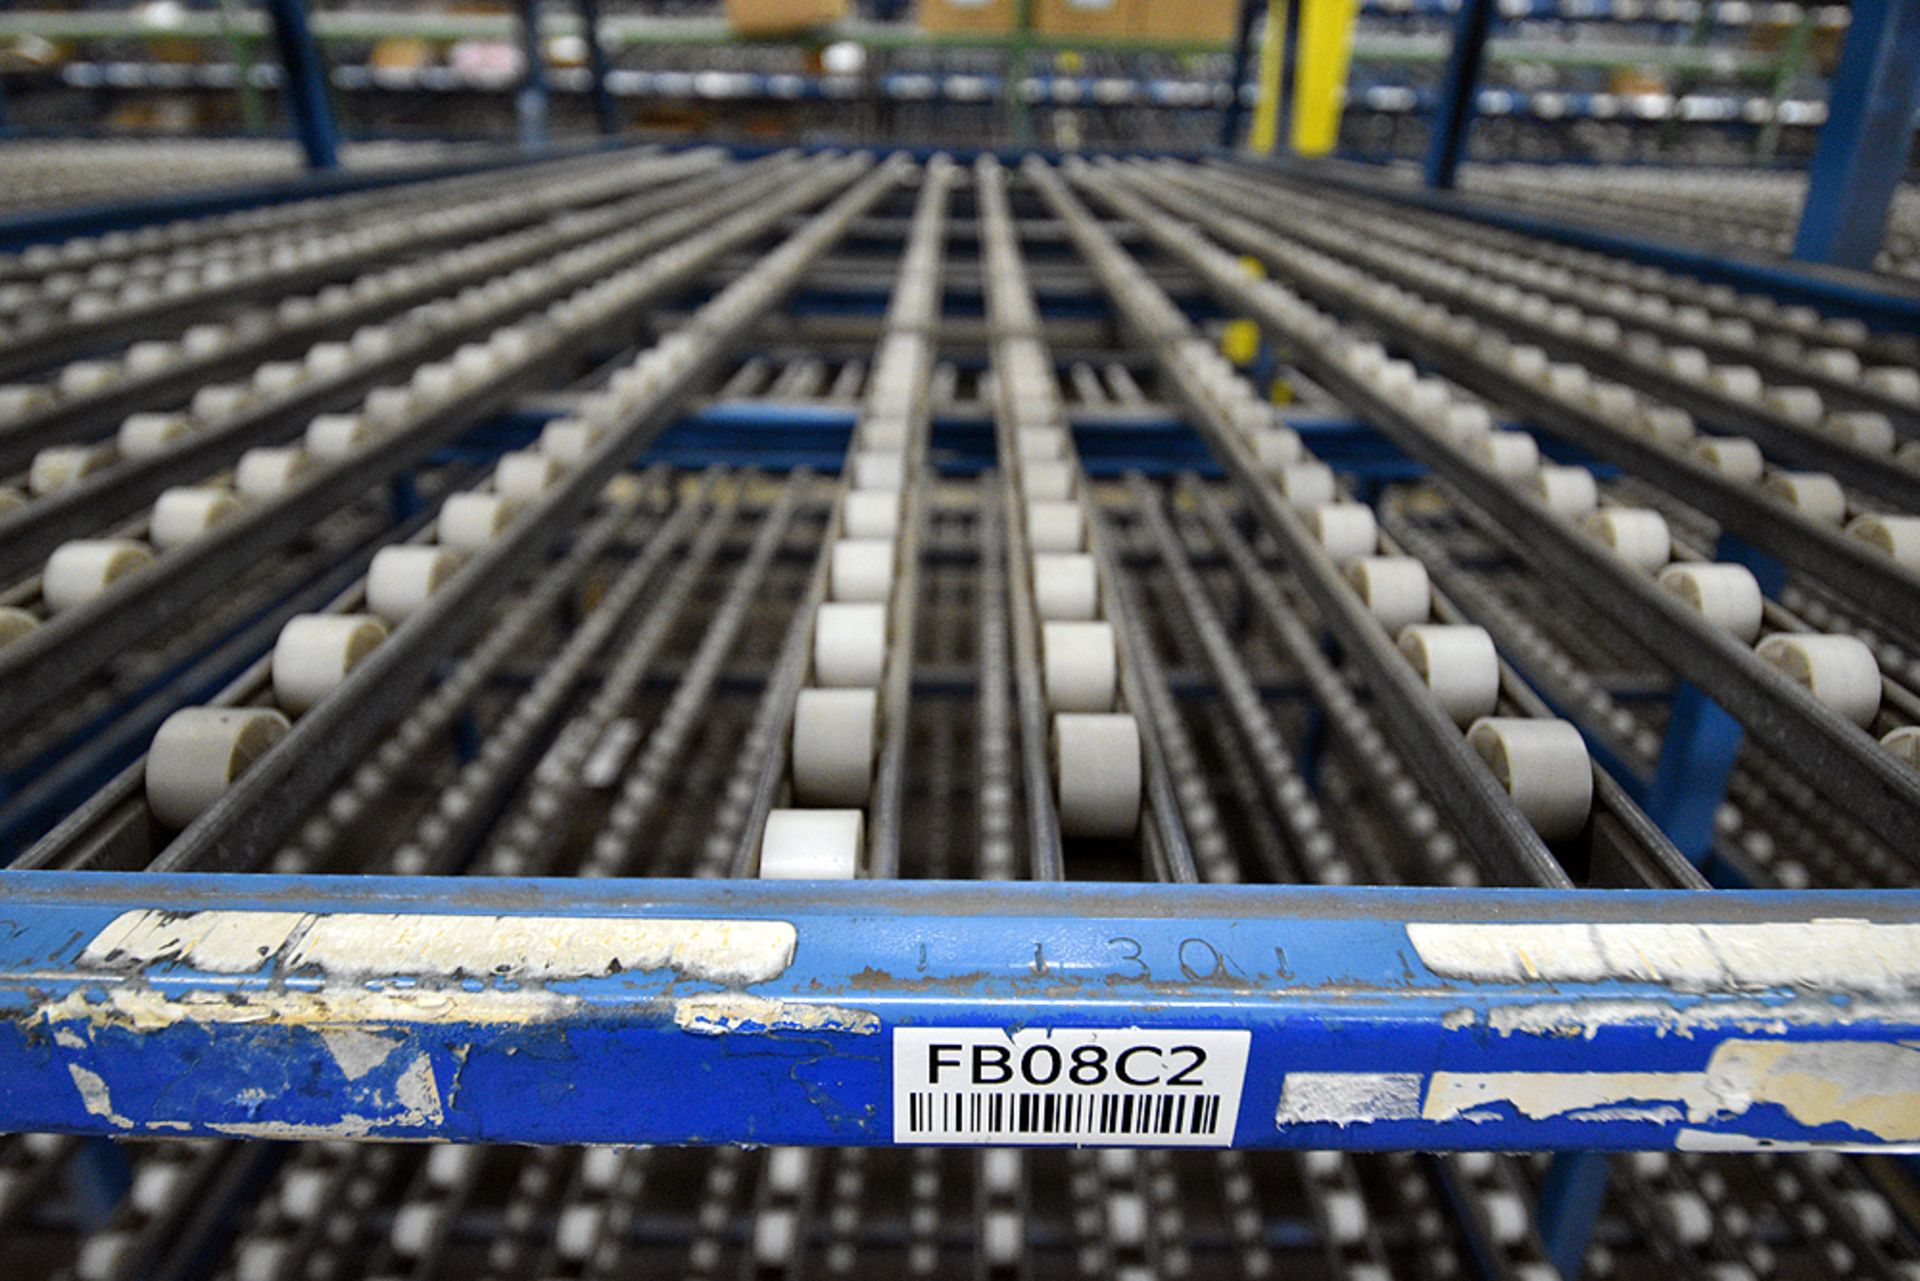 """4-Tier Gravity Fed, Carton Flow Rack (116""""x624""""x95""""H) (108""""x1"""" Rollers) - Image 3 of 4"""